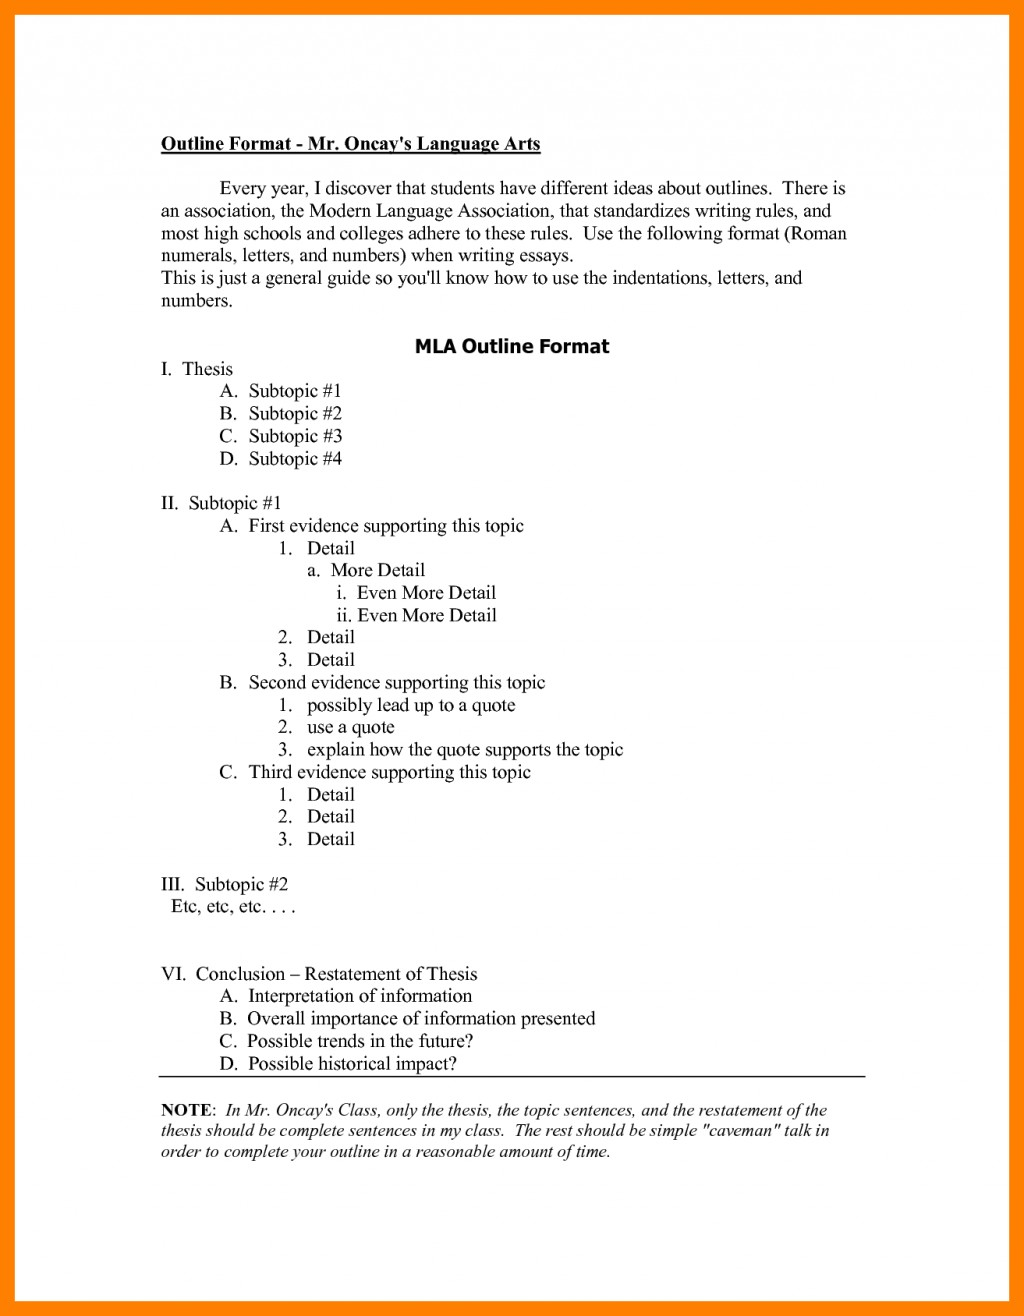 012 20research Paper Samples Outlines For Papers Mla High School Outline Format Pear Tree 1024x1316 Unforgettable Research Blank Template College Large